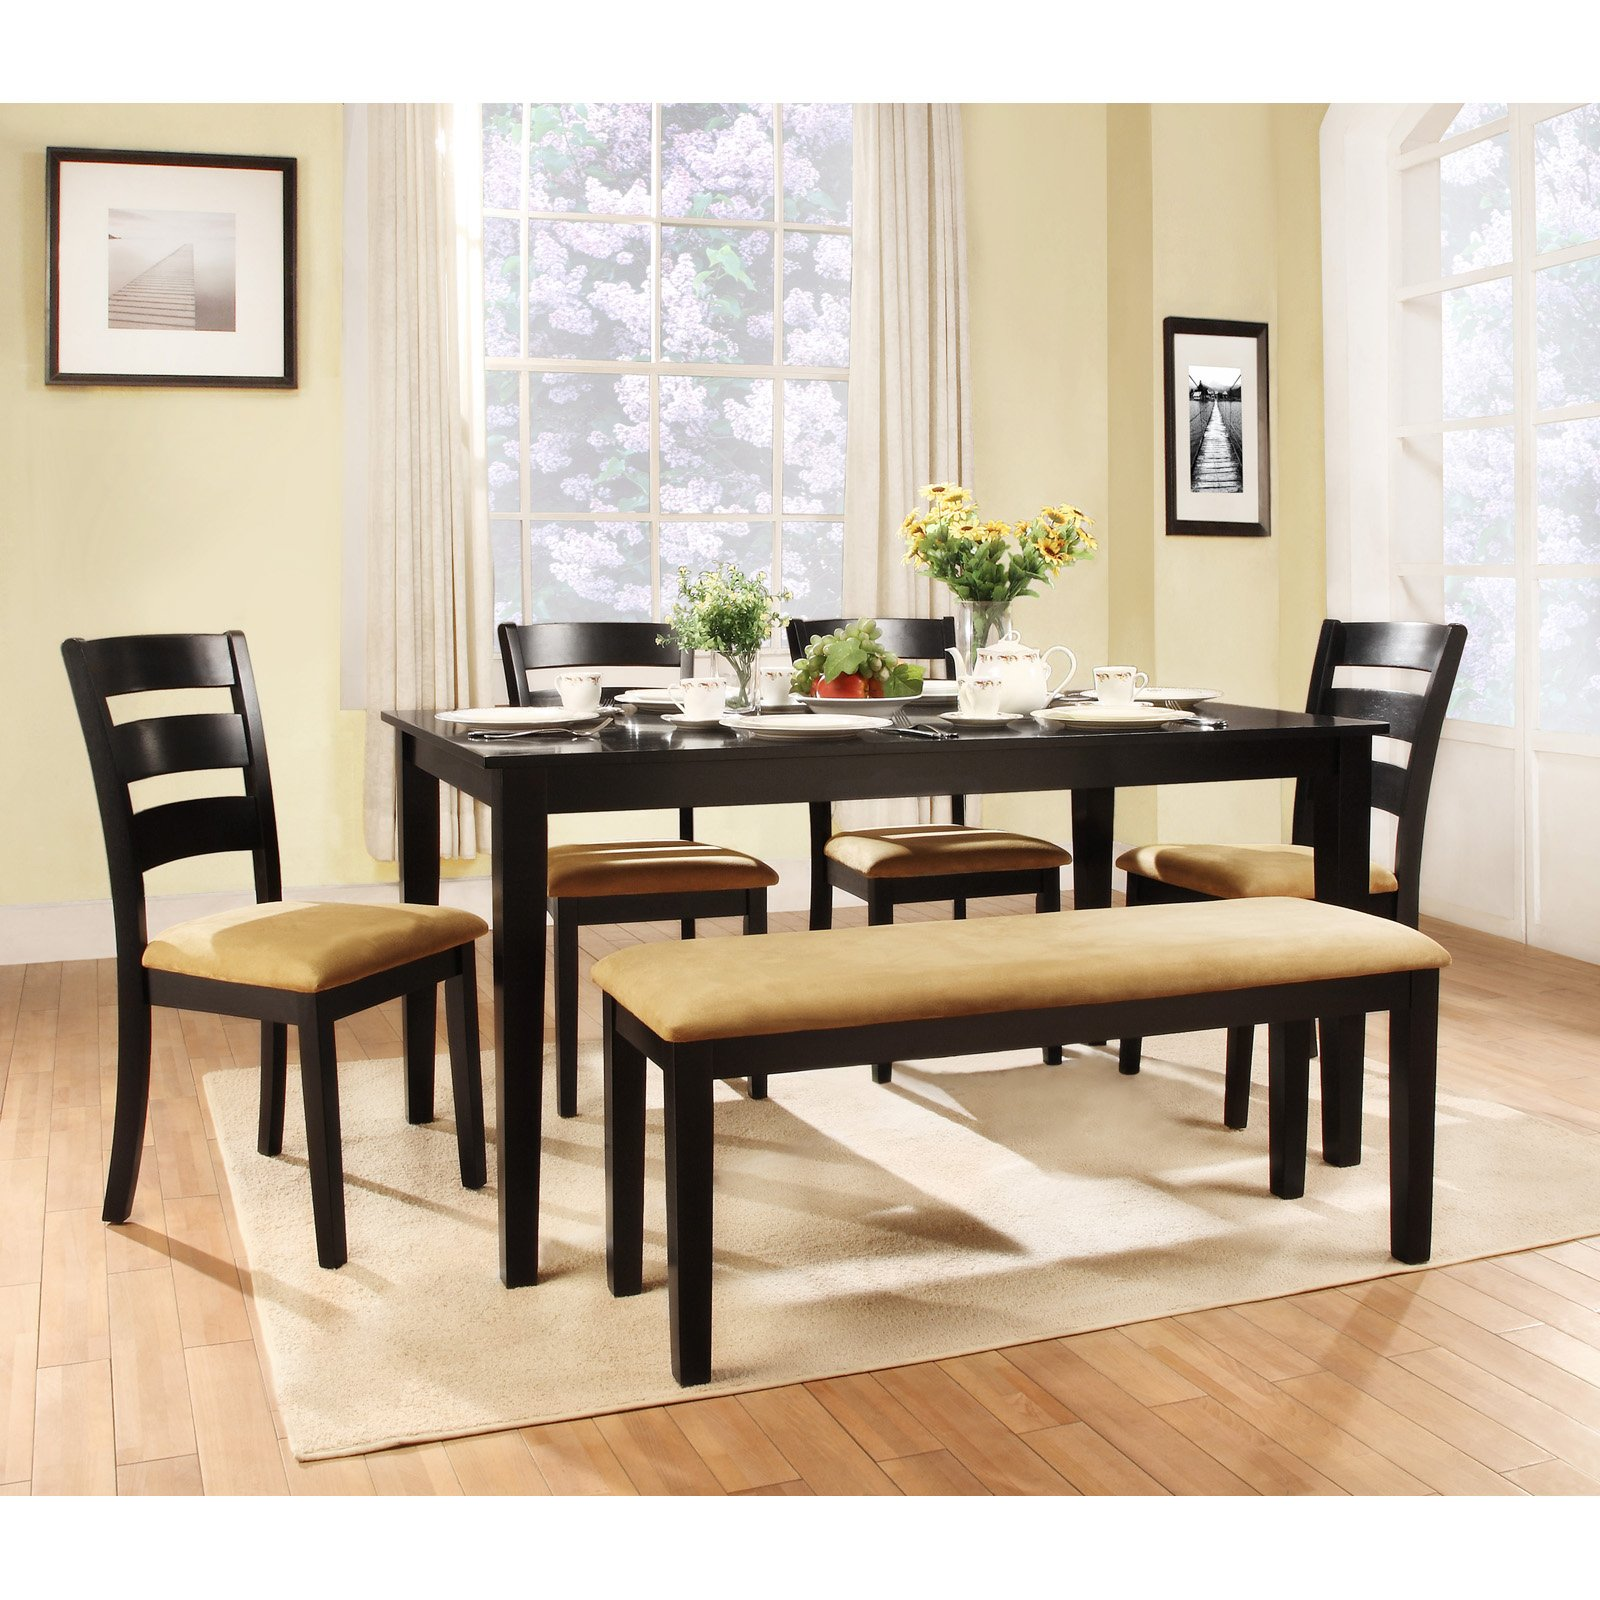 Modern bench style dining table set ideas homesfeed for Dining table design